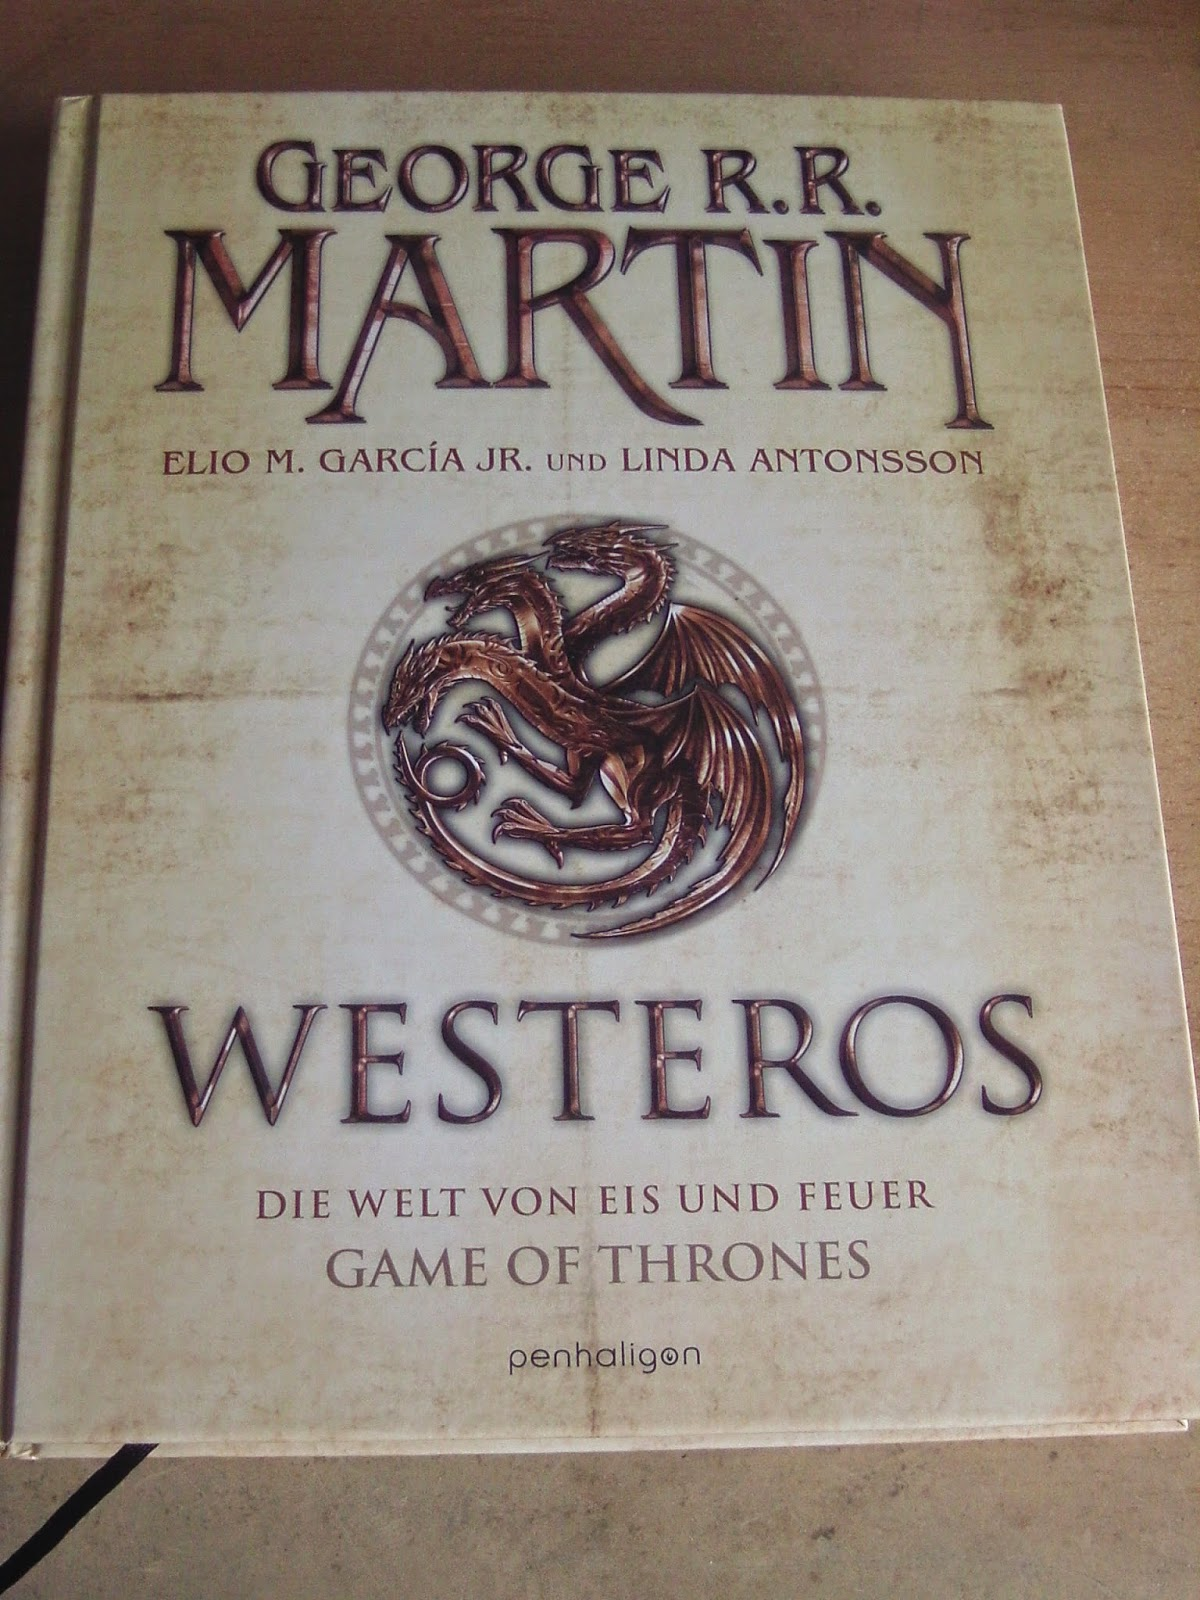 http://www.amazon.de/Westeros-Welt-Feuer-THRONES-Bildband/dp/3764531363/ref=sr_1_1?ie=UTF8&qid=1429121031&sr=8-1&keywords=westeros